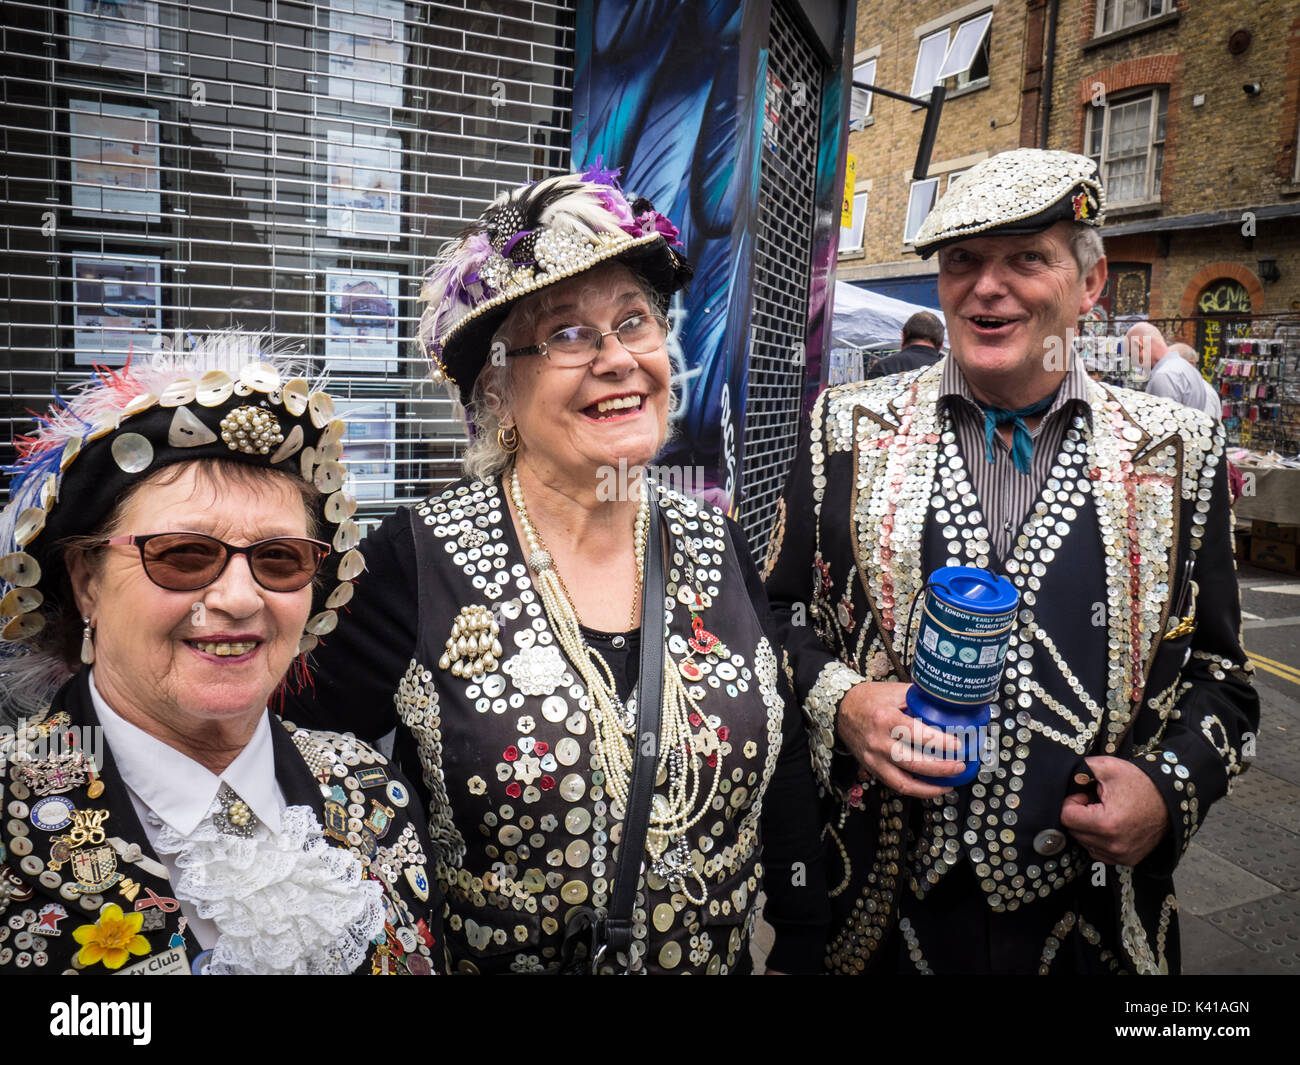 Pearly Kings and Queens collect money for Charity on Sunday mornings in London's popular Brick Lane market in Spitalfields, East End, London UK - Stock Image